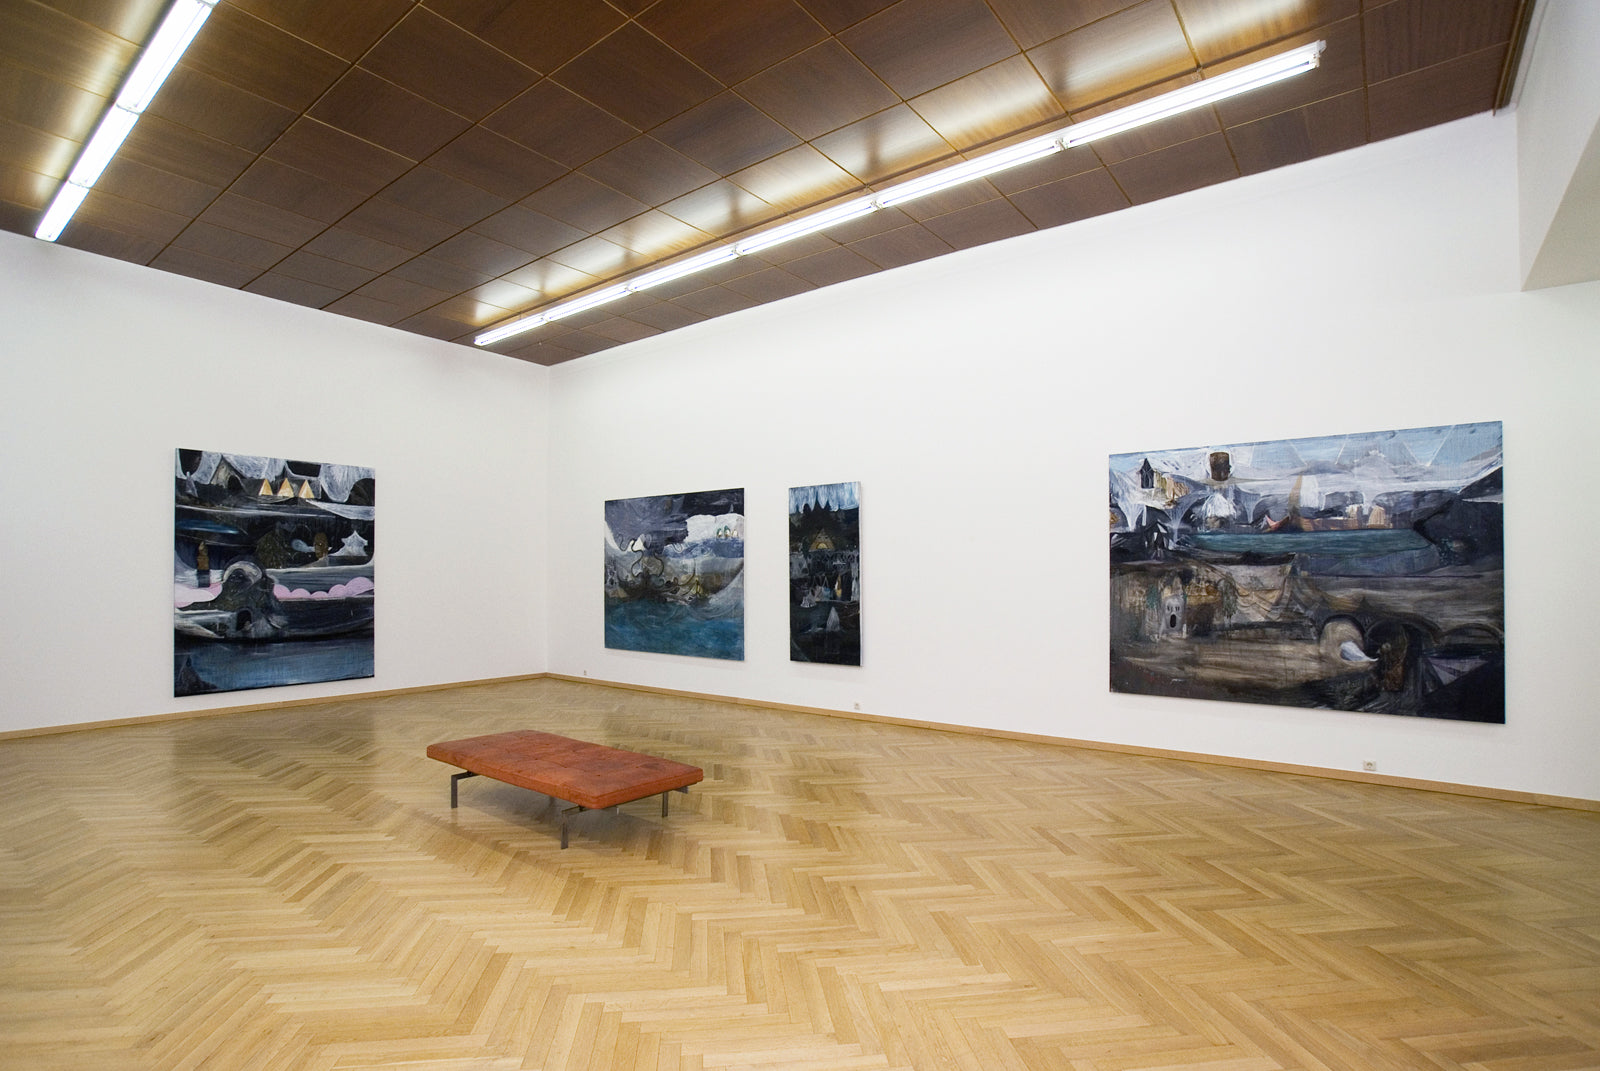 Christof Mascher, The Ghost Yard, Installation view, 2007, Galerie Michael Janssen, Cologne